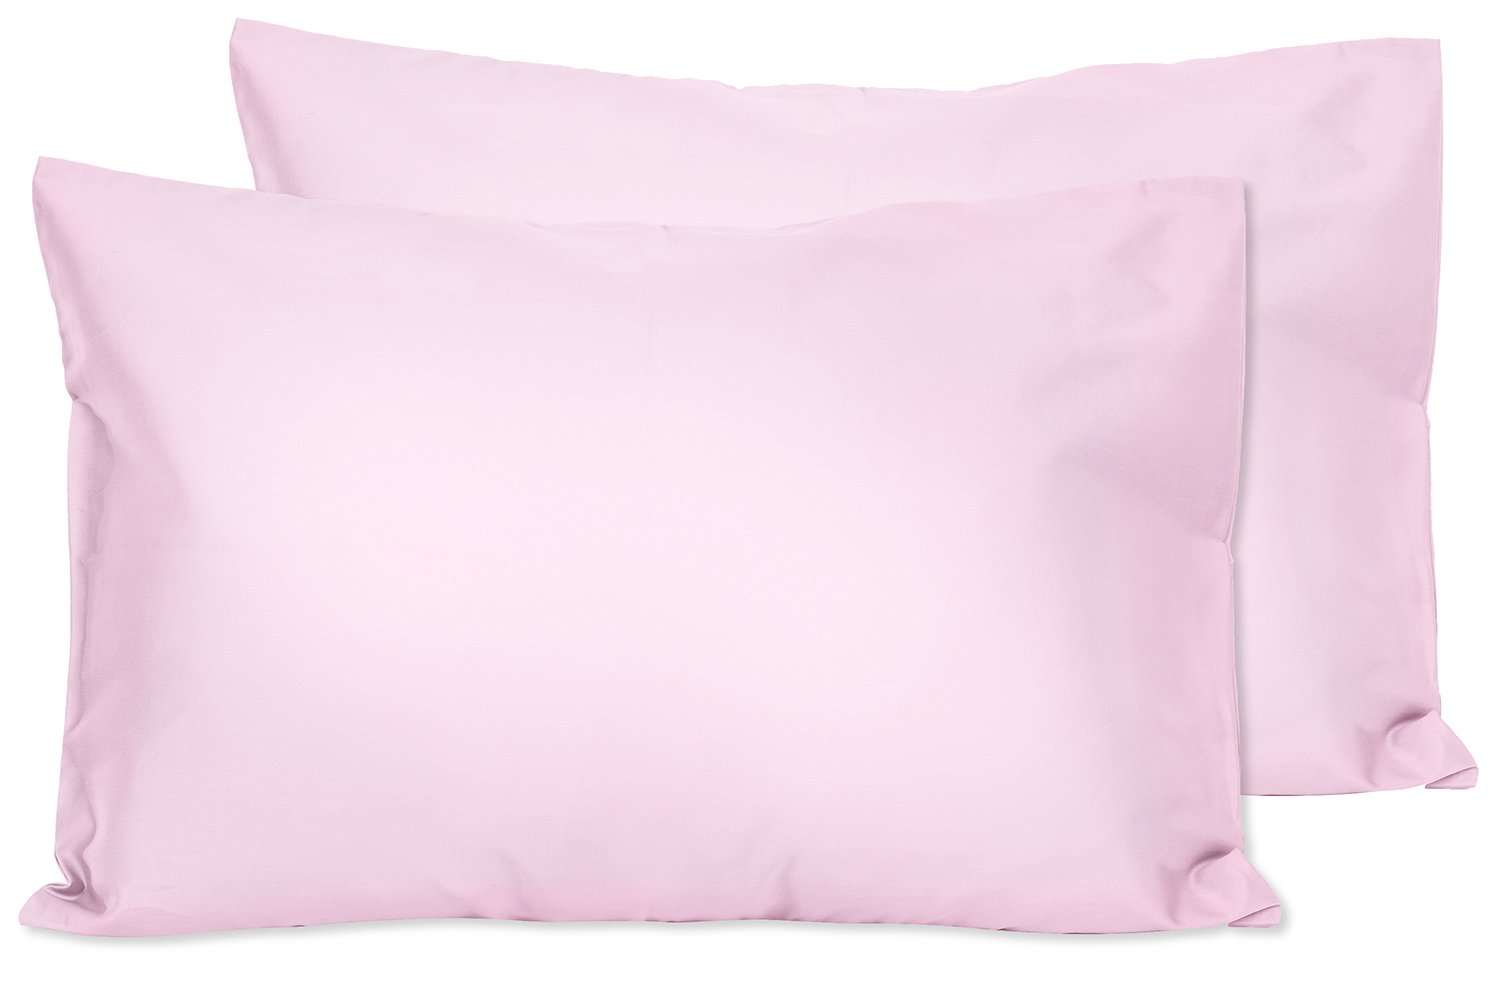 2 Light Pink Toddler Pillowcases - Envelope Style - For Pillows Sized 13x18 and 14x19 - 100% Cotton With Percale Weave - Machine Washable - 2 Pack